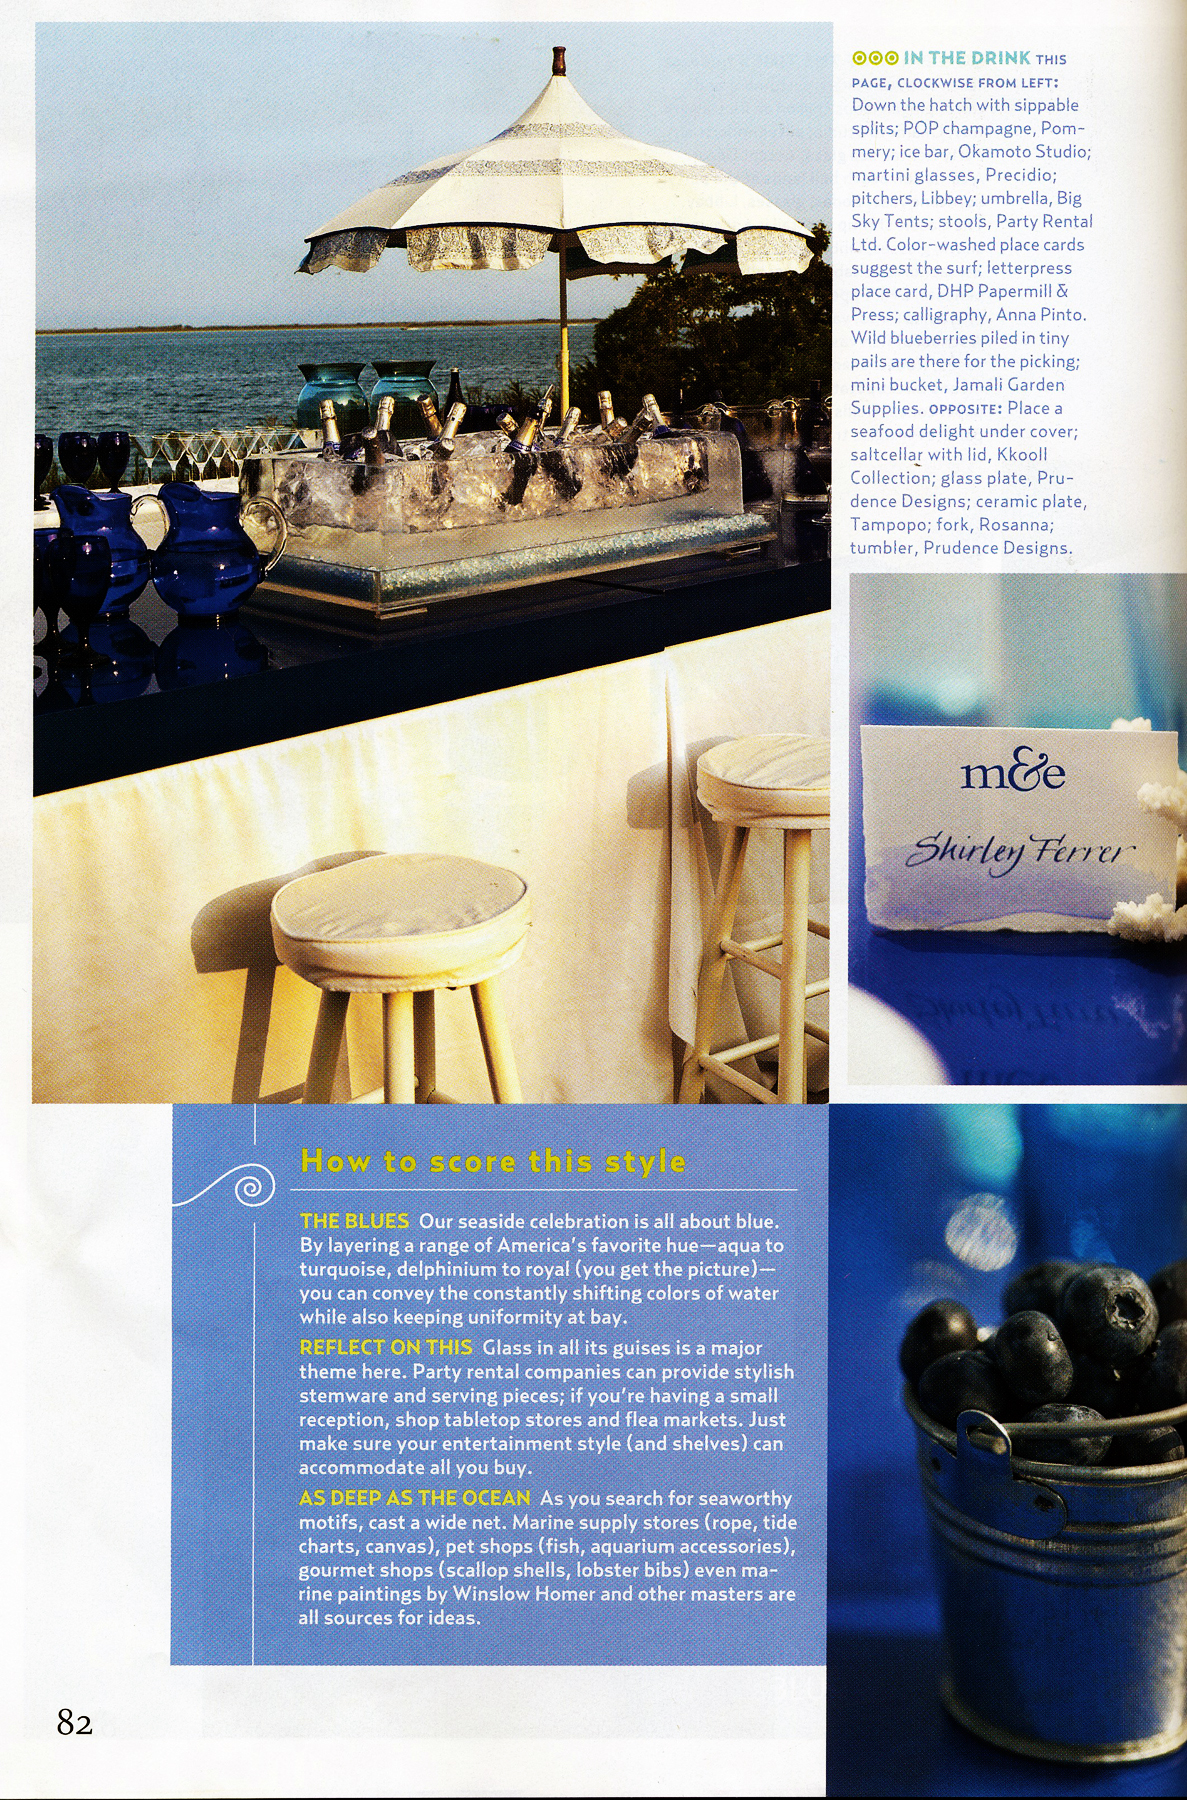 Brides Magazine Seaside Heights pg 82.jpg